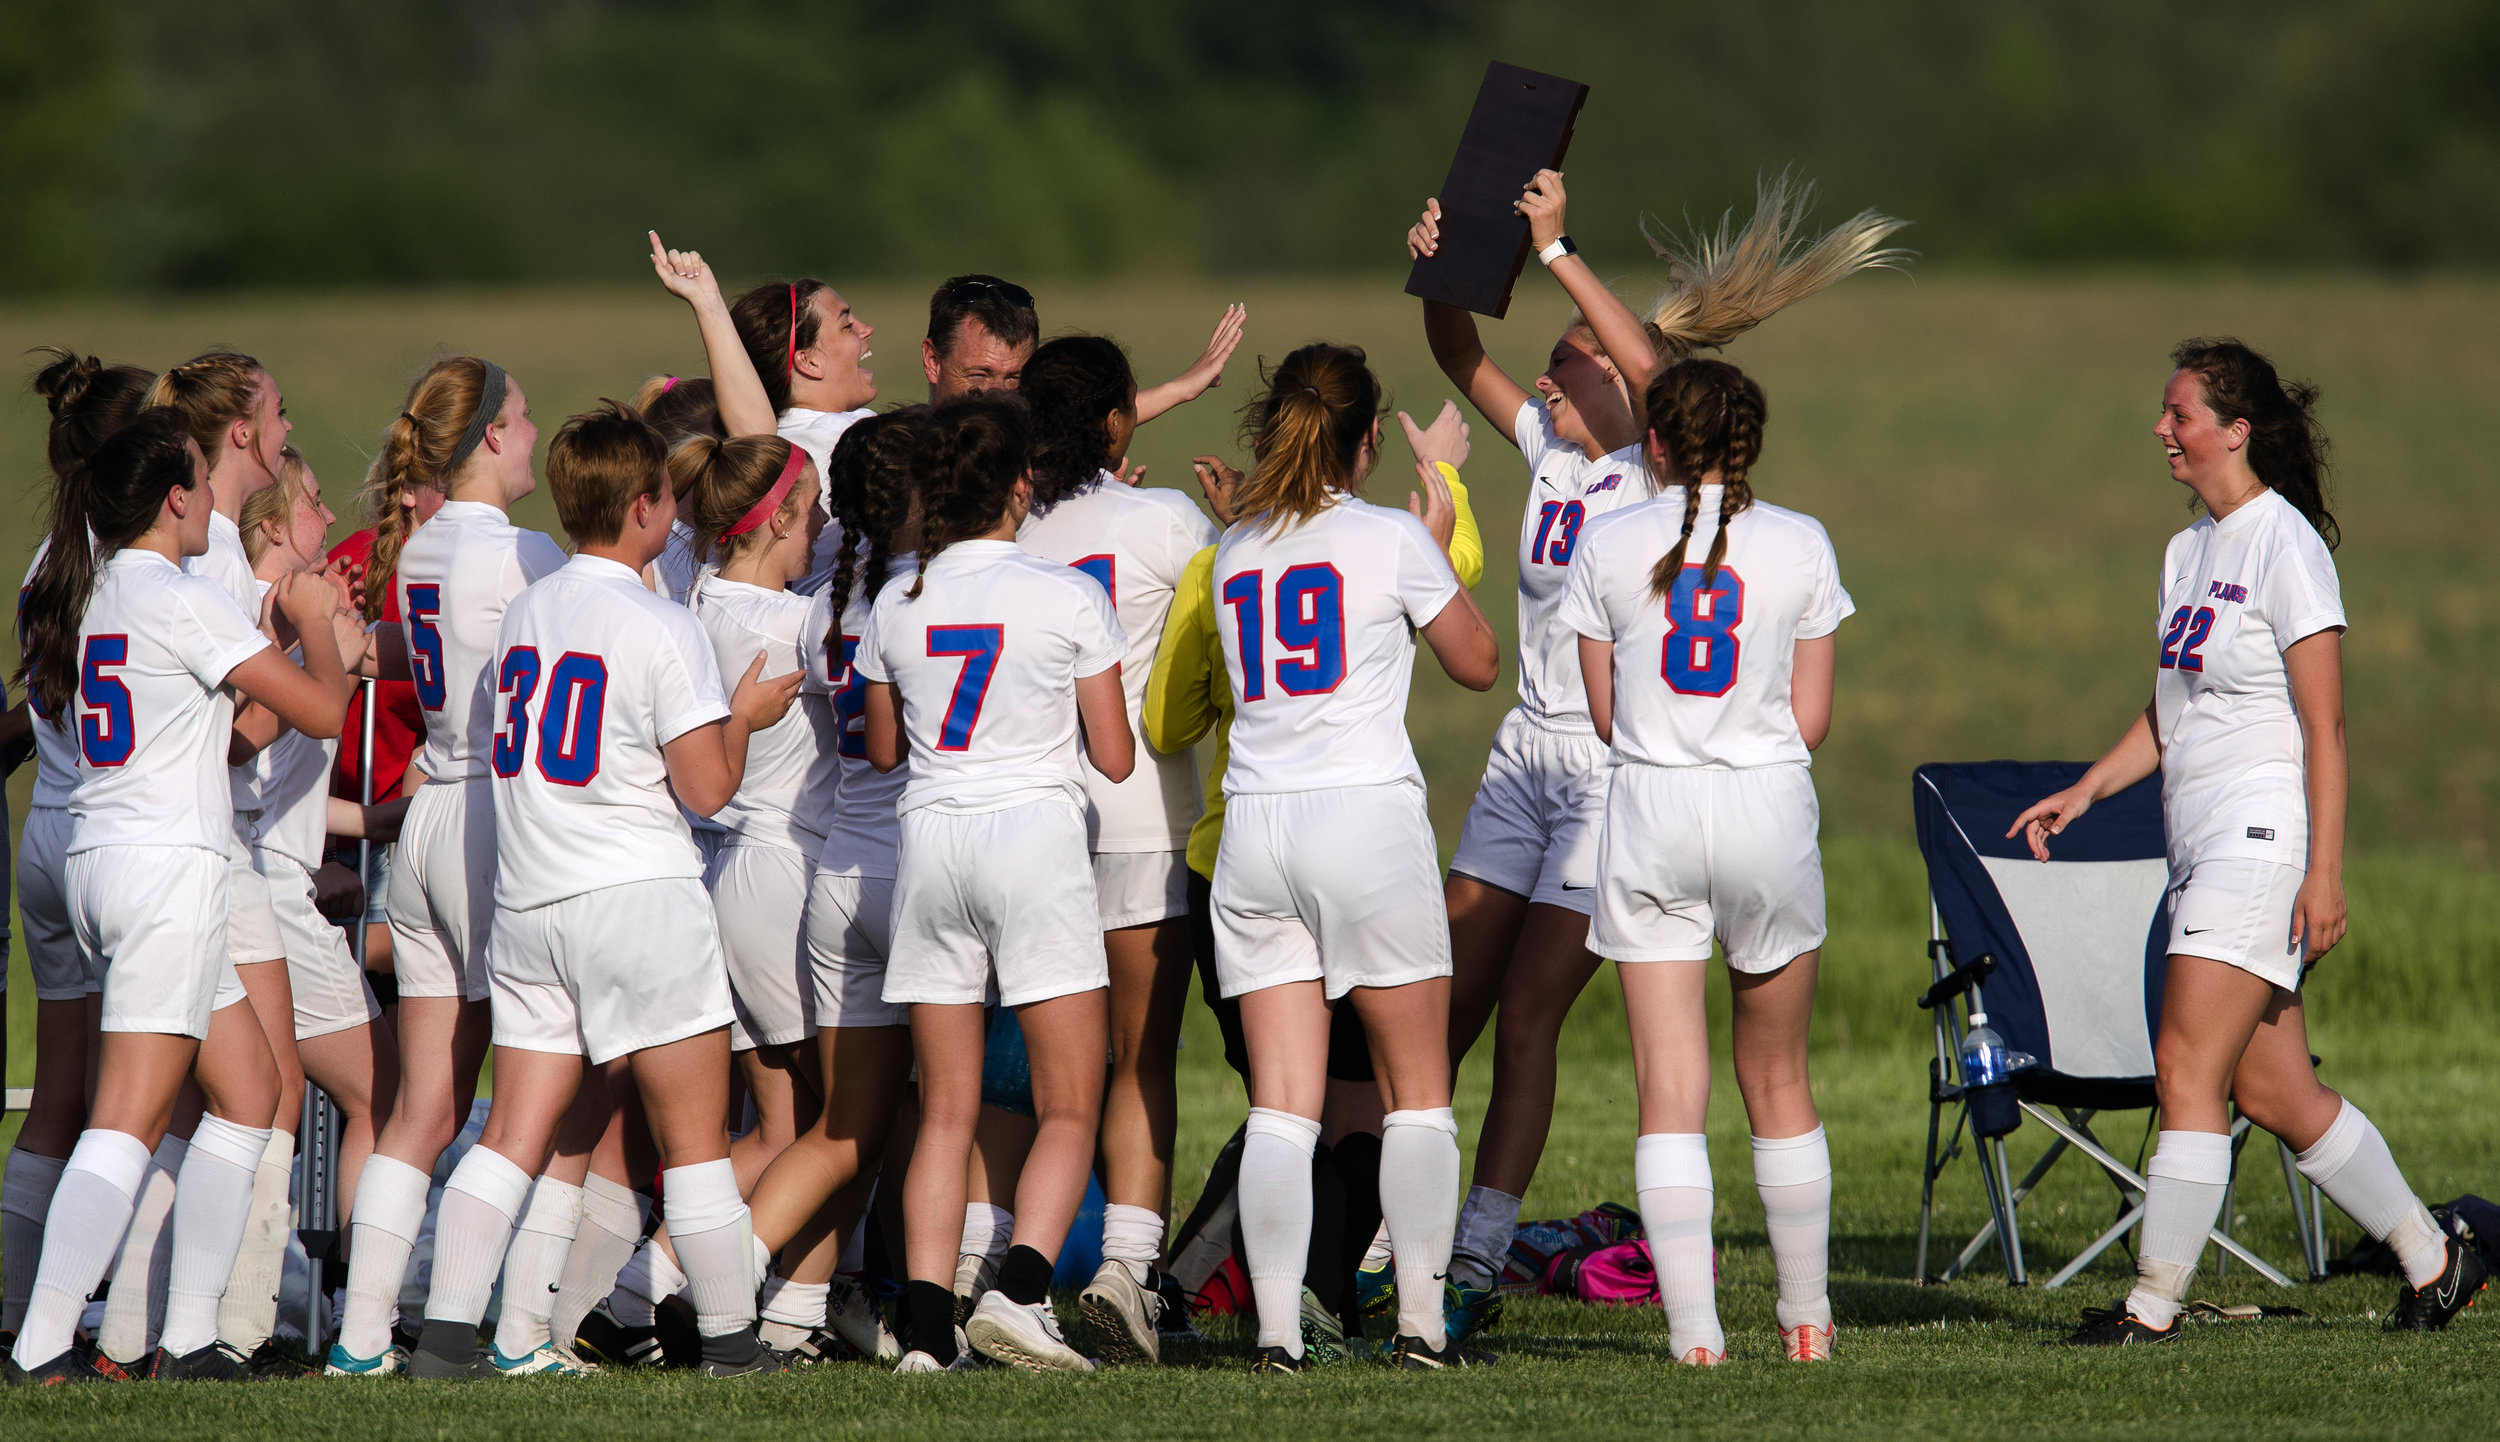 Pleasant Plains' Grace Sinclair and Molly Gebhards deliver the regional hardware to their teammates after defeating Athens during the Class 1A girls soccer regional championship at Pleasant Plains Friday, May 11, 2018. [Ted Schurter/The State Journal-Register]